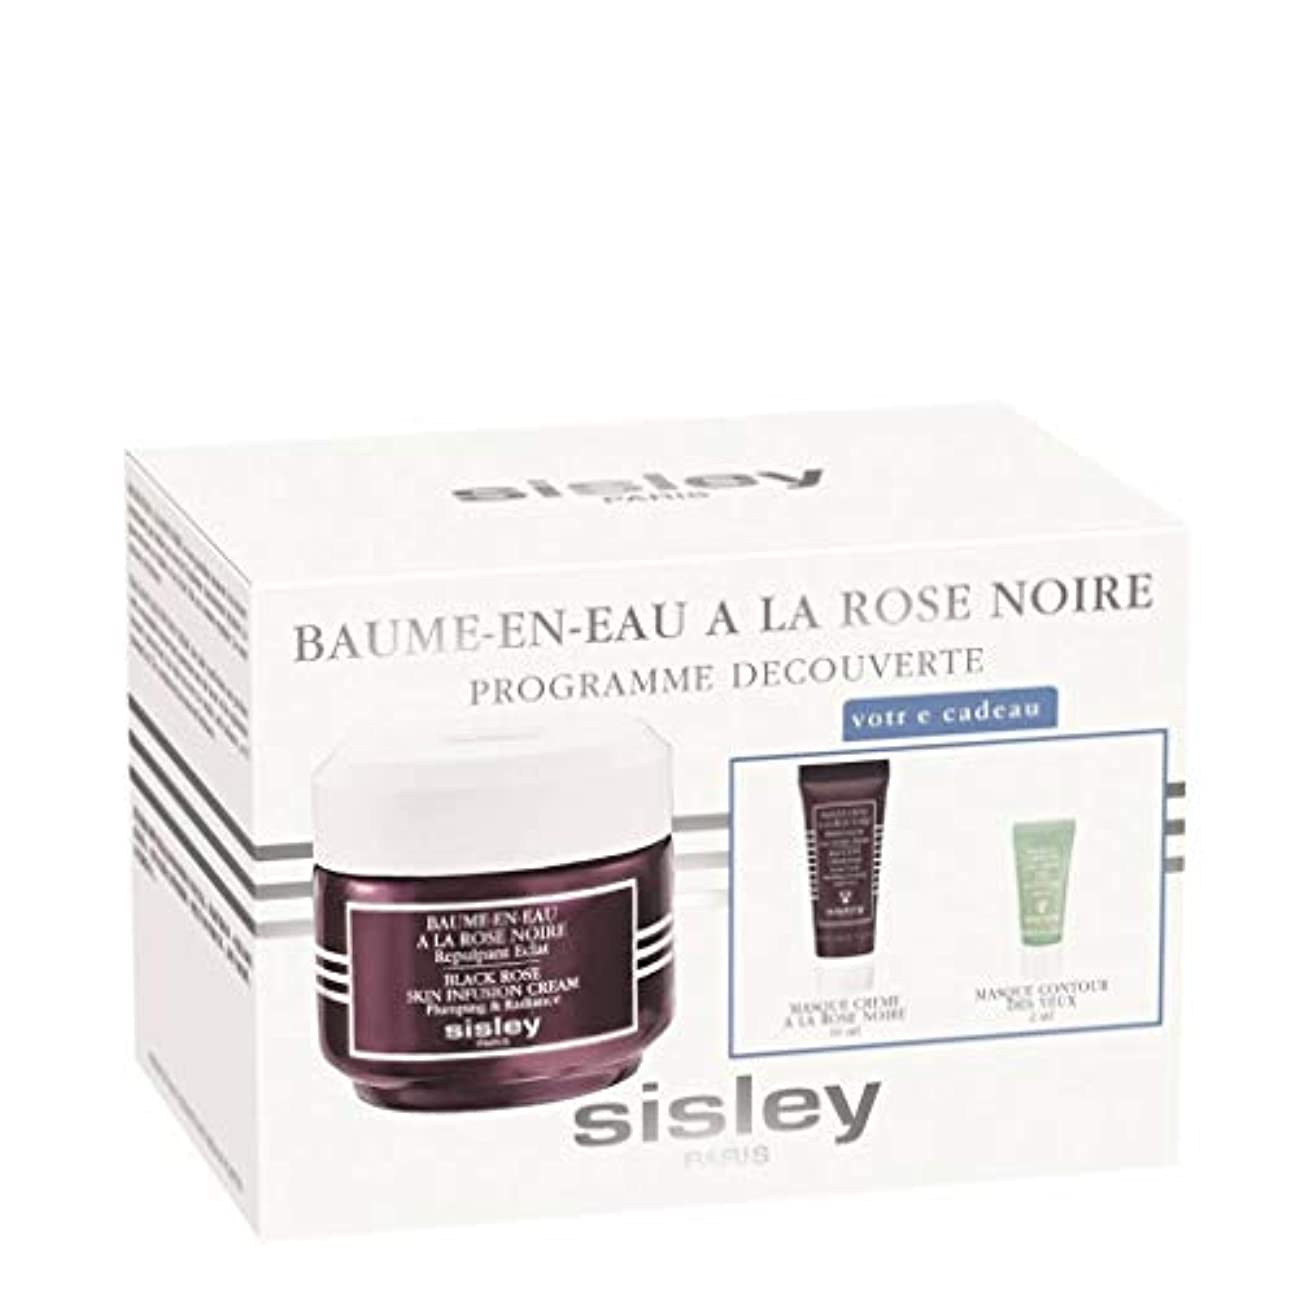 スカリーロープ扱いやすいシスレー Black Rose Skin Infusion Cream Discovery Program: Black Rose Skin Infusion Cream 50ml+Black Rose Cream Mask...